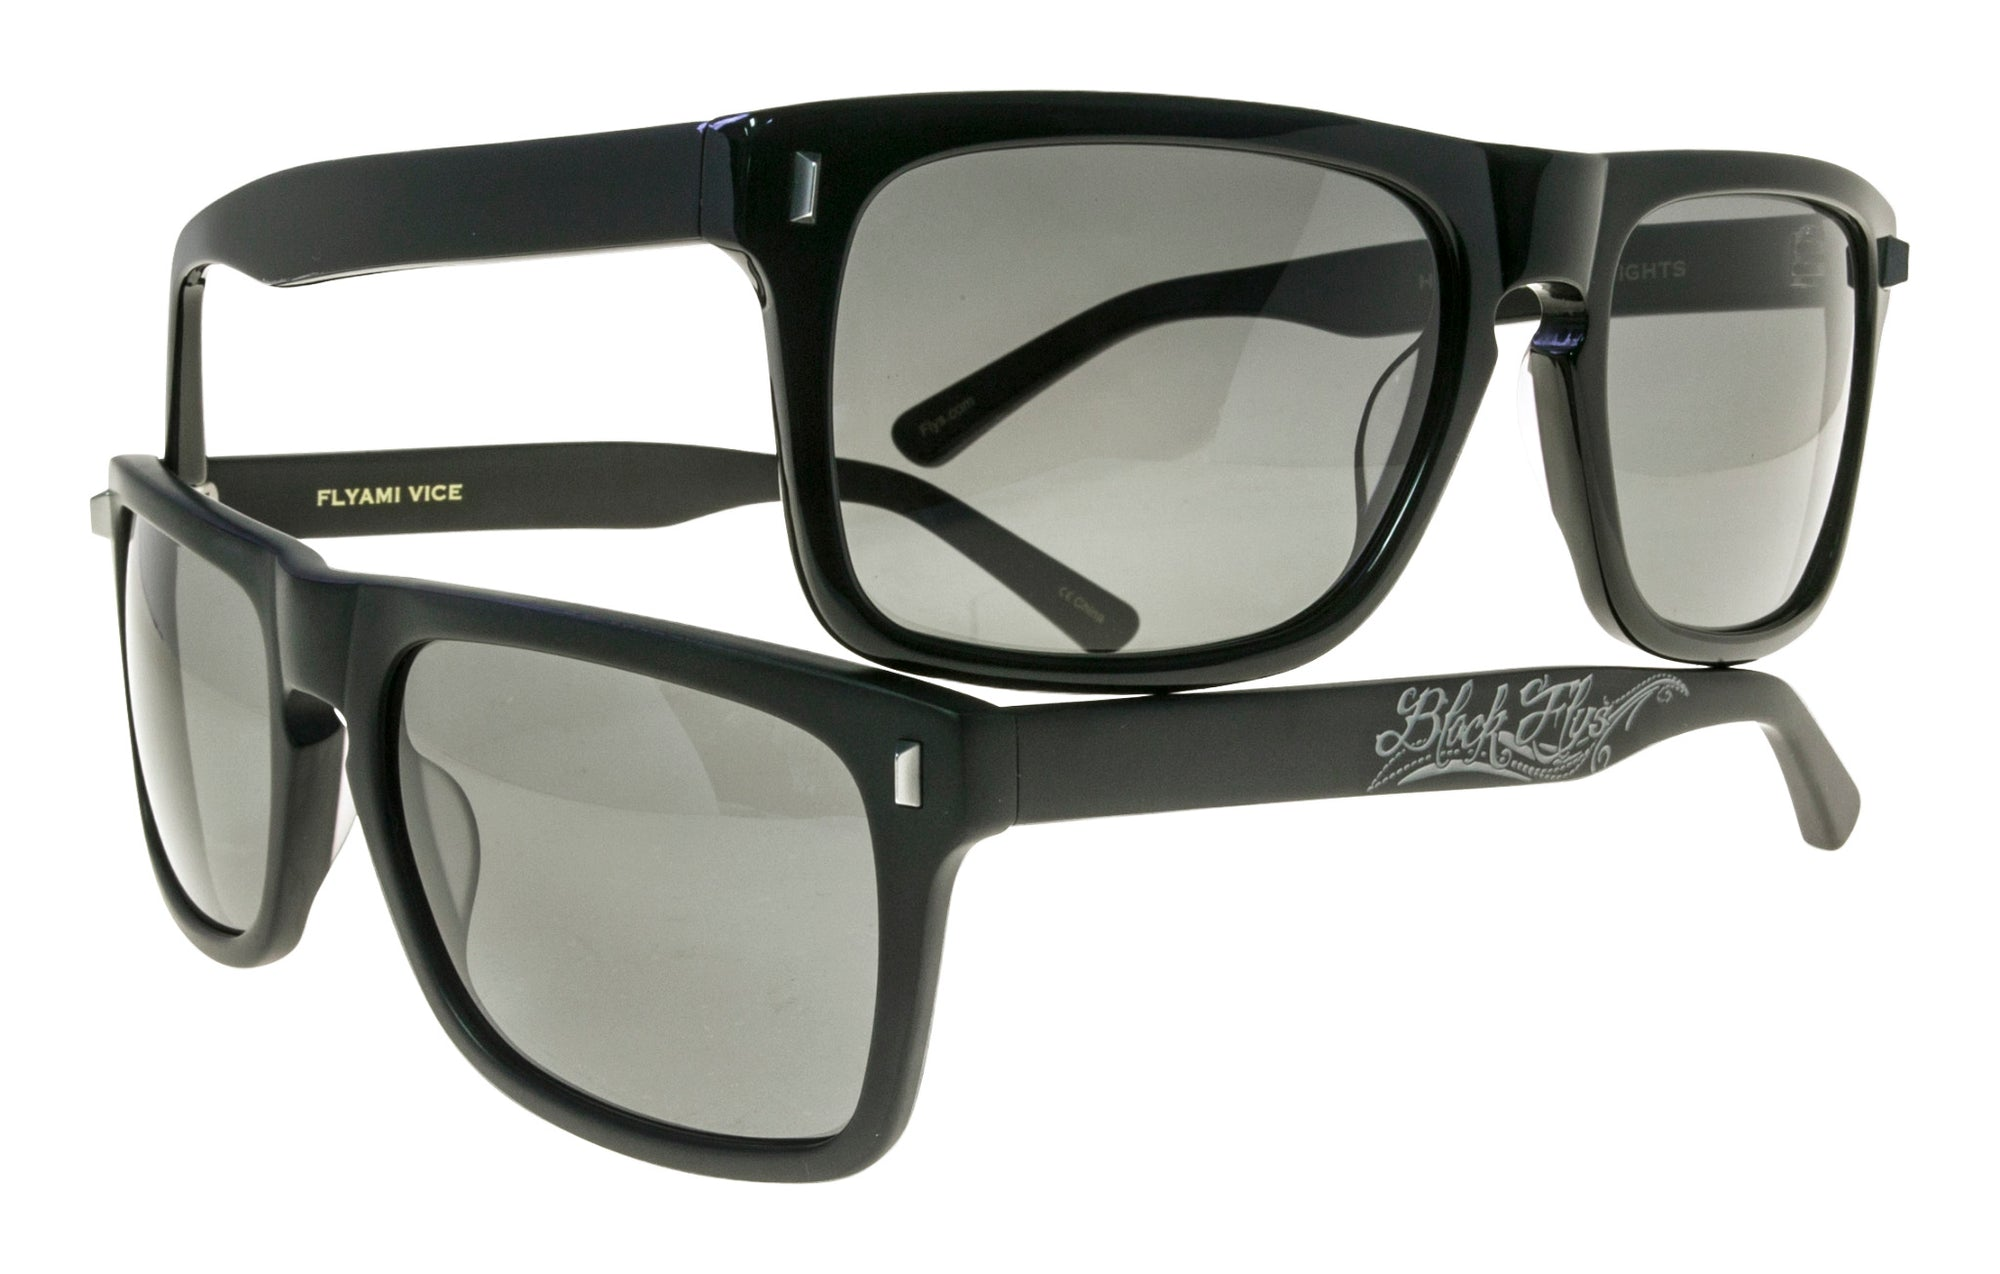 Flyami Vice Polarized